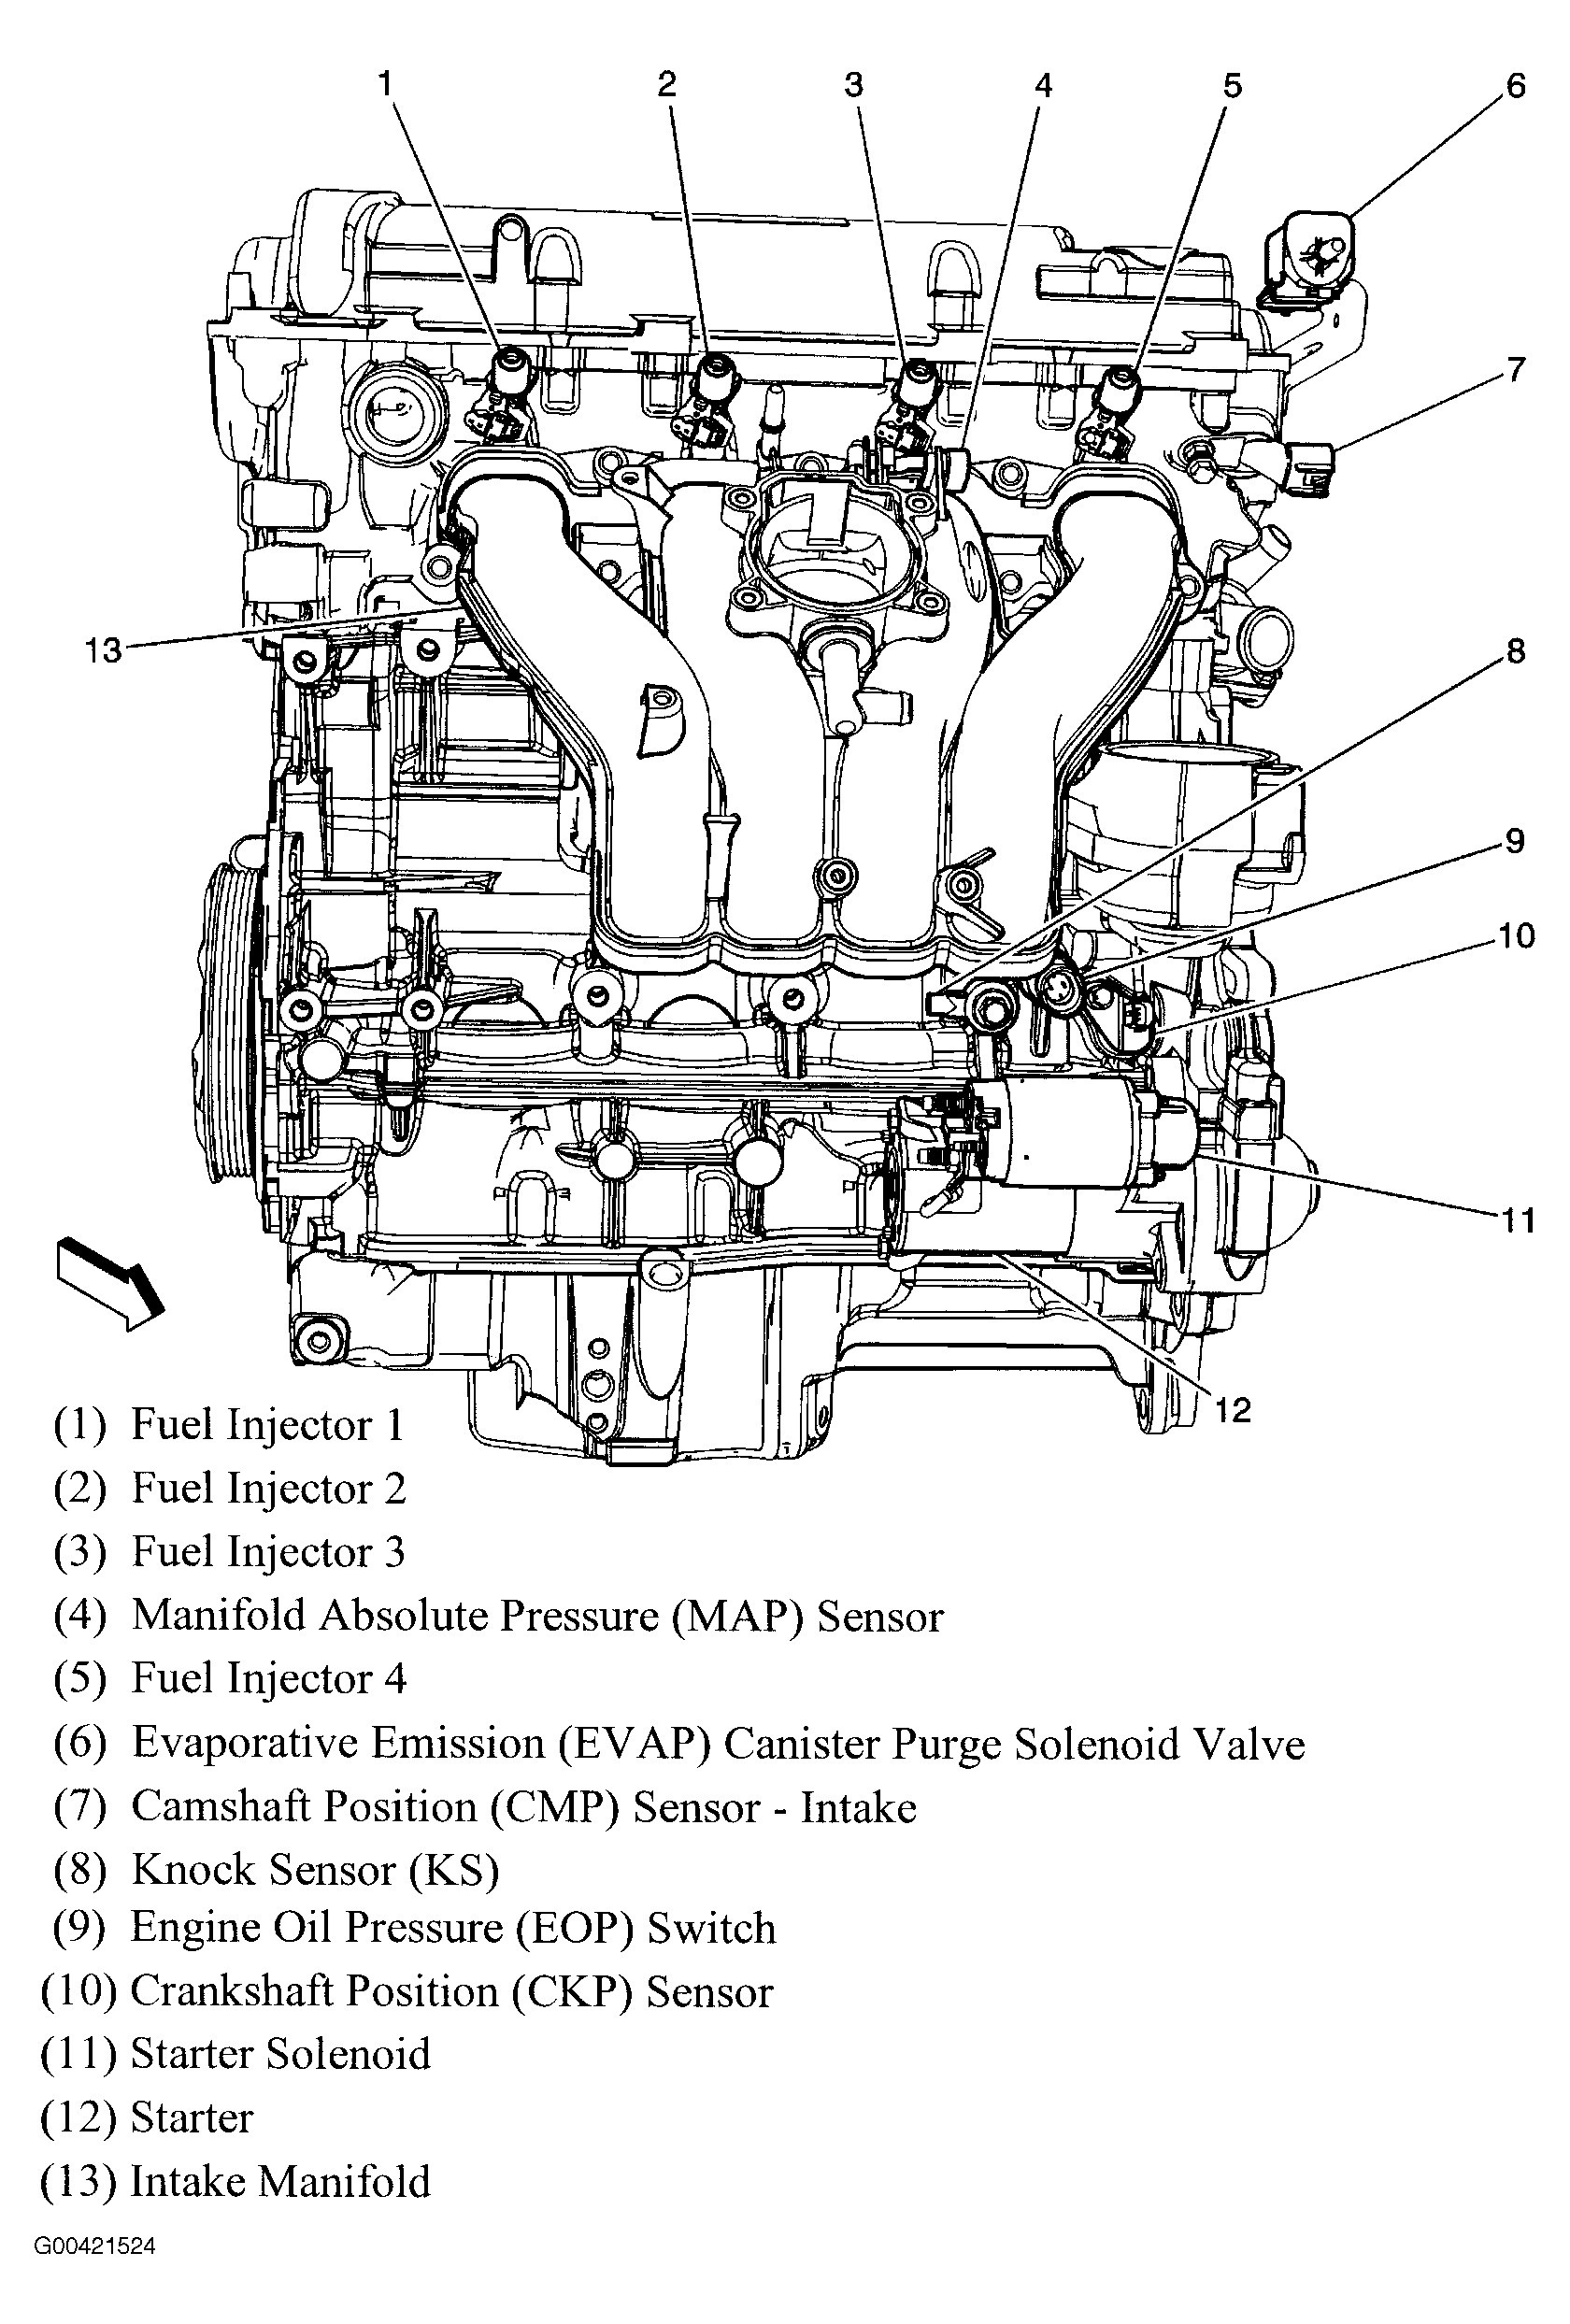 hight resolution of 1994 camero 3 4 liter gm engine diagram wiring diagram datasource2002 camaro engine diagram wiring diagram